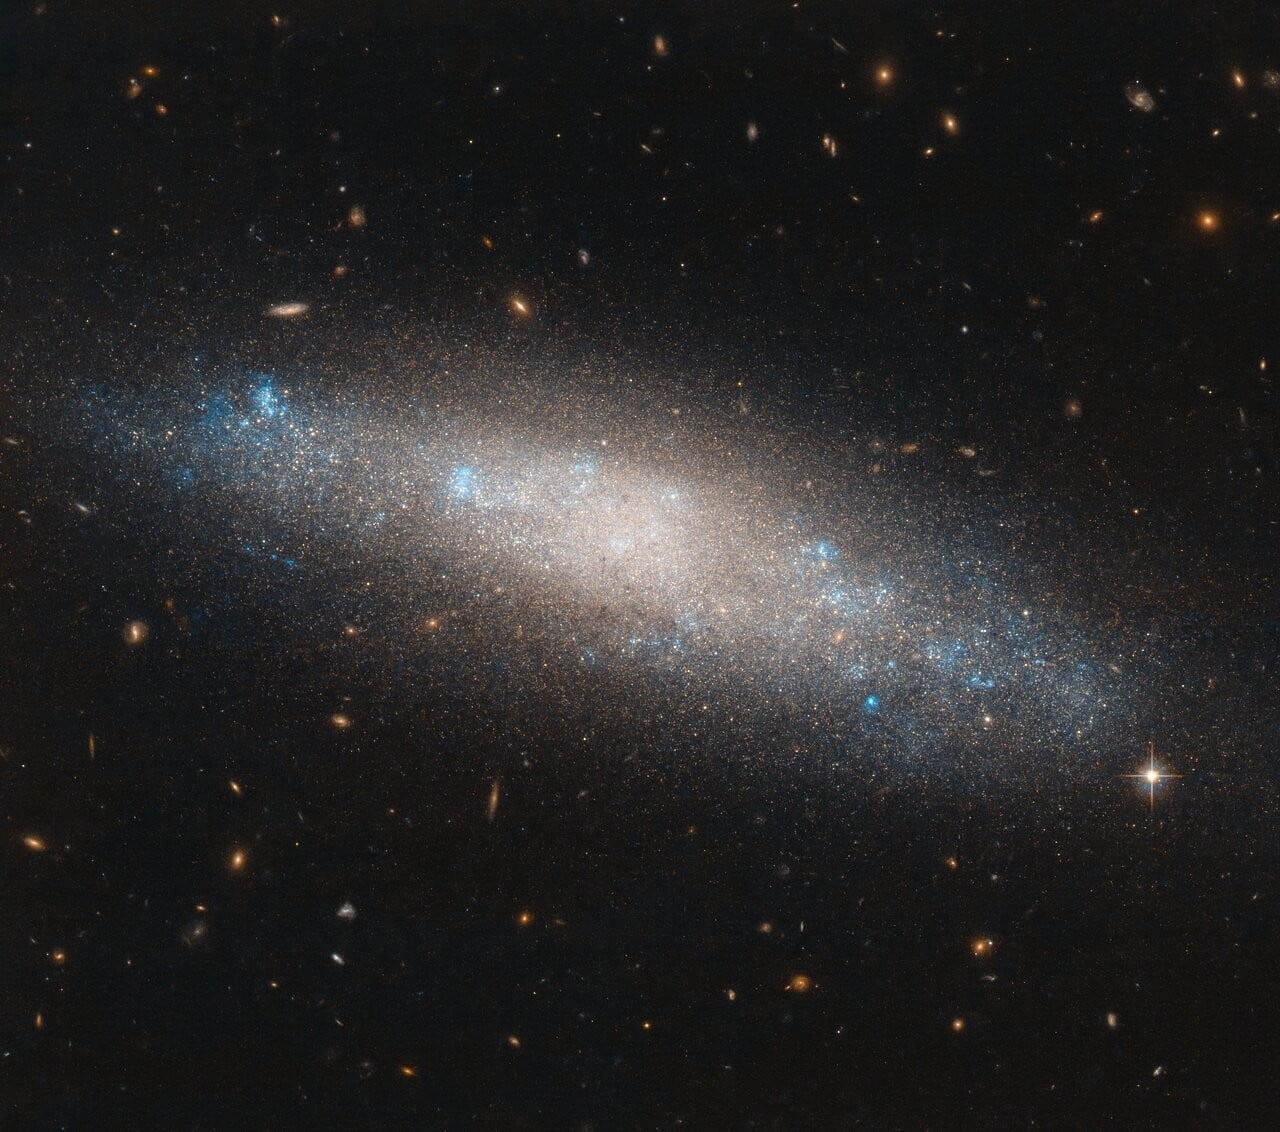 This Hubble image shows NGC 4455